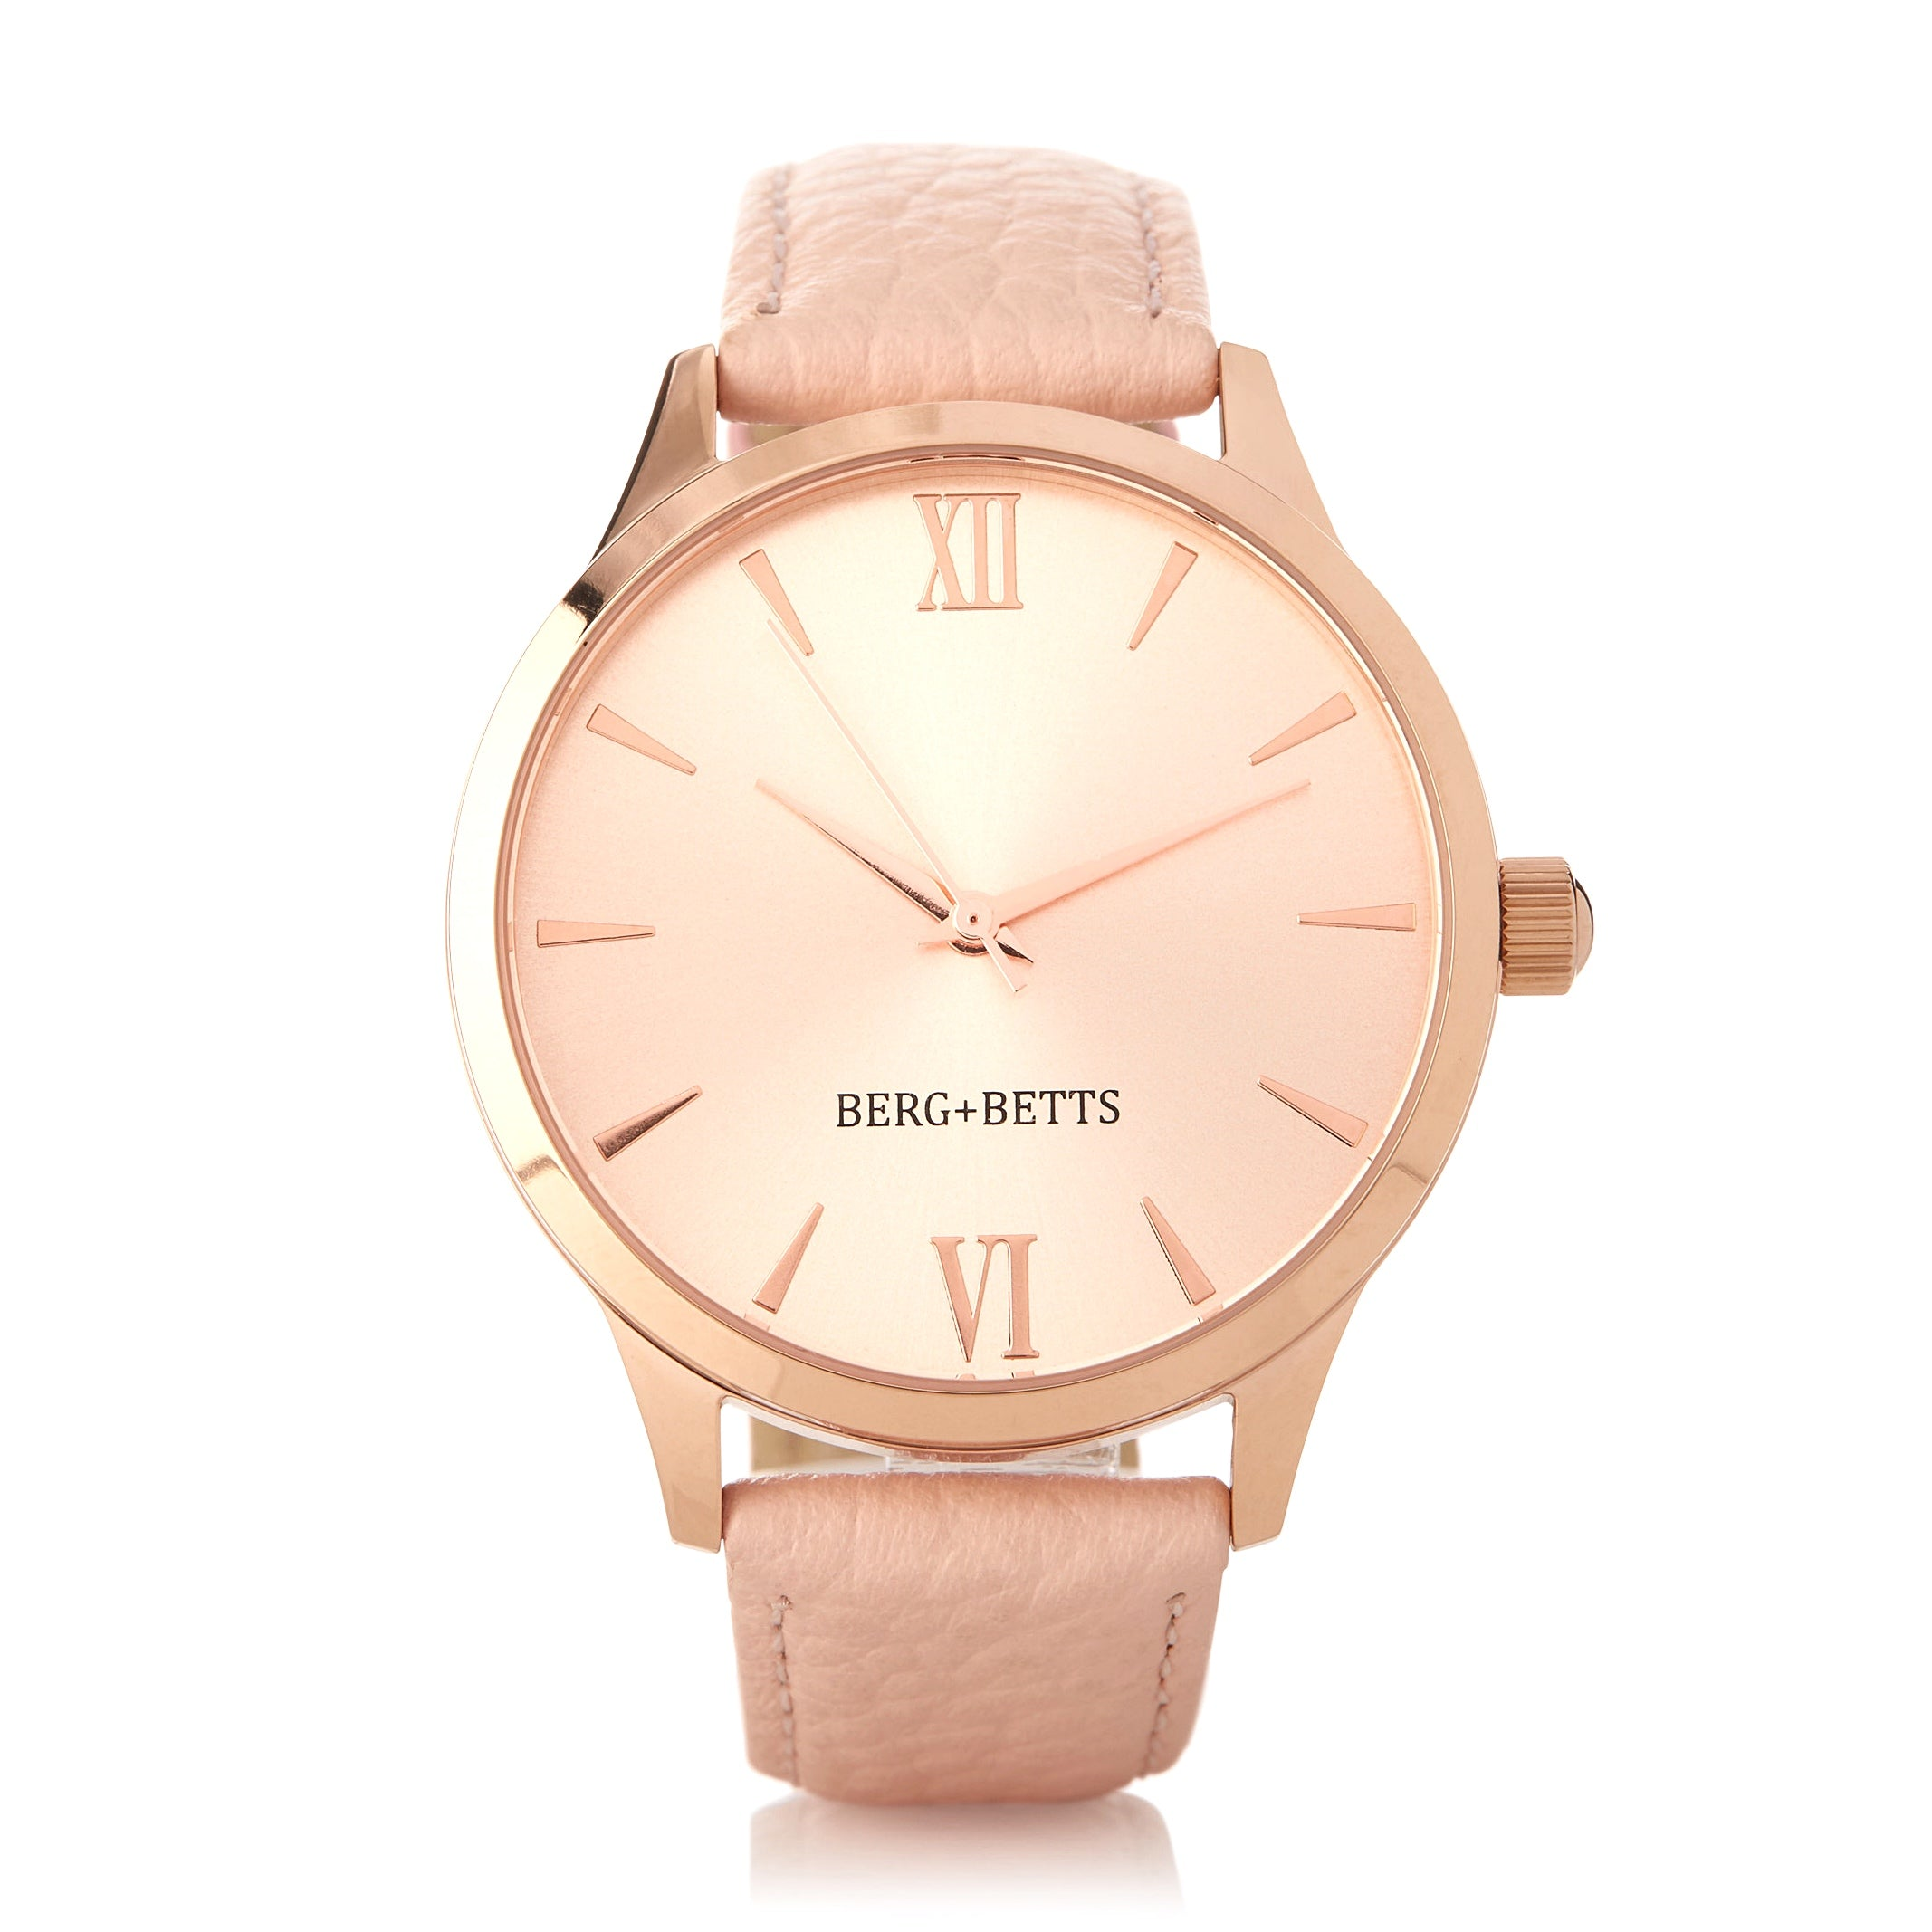 Round watch with mirrored rose gold face and sustainable leather strap in blush from BERG+BETTS